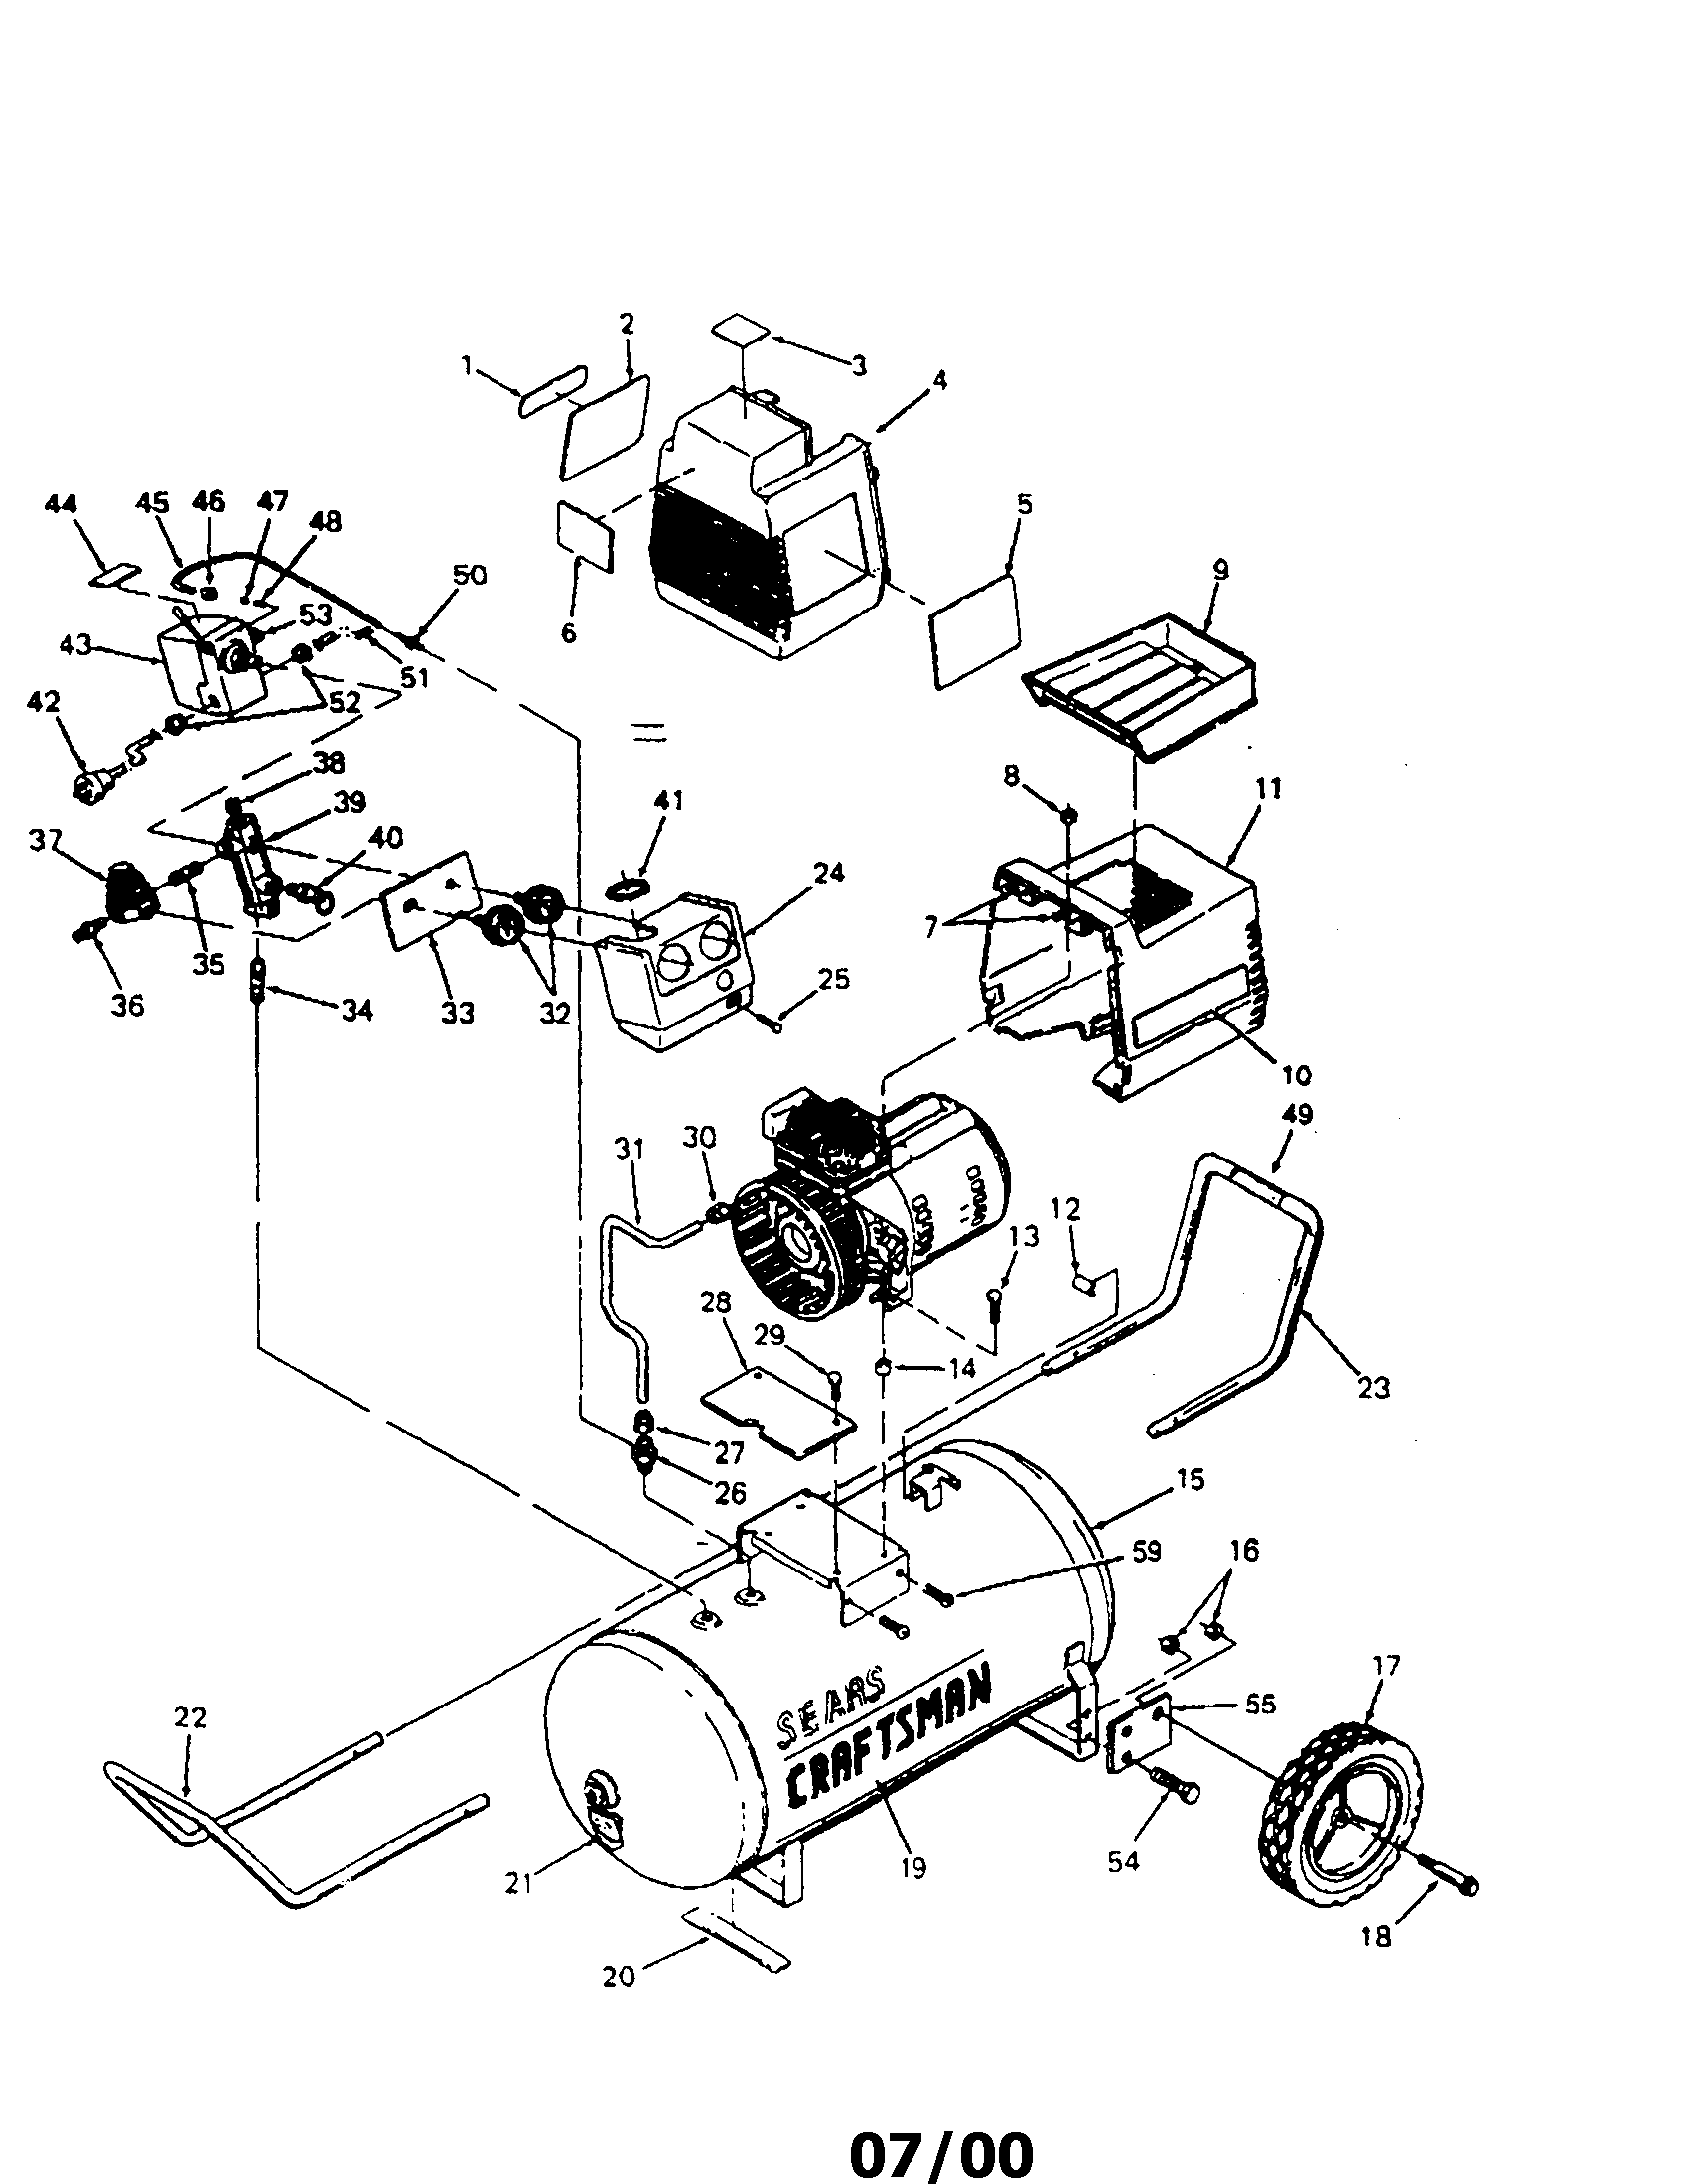 919.153231_craftsman_compressor_parts 919 153231 sears craftsman air compressor parts abac air compressor wiring diagram at alyssarenee.co